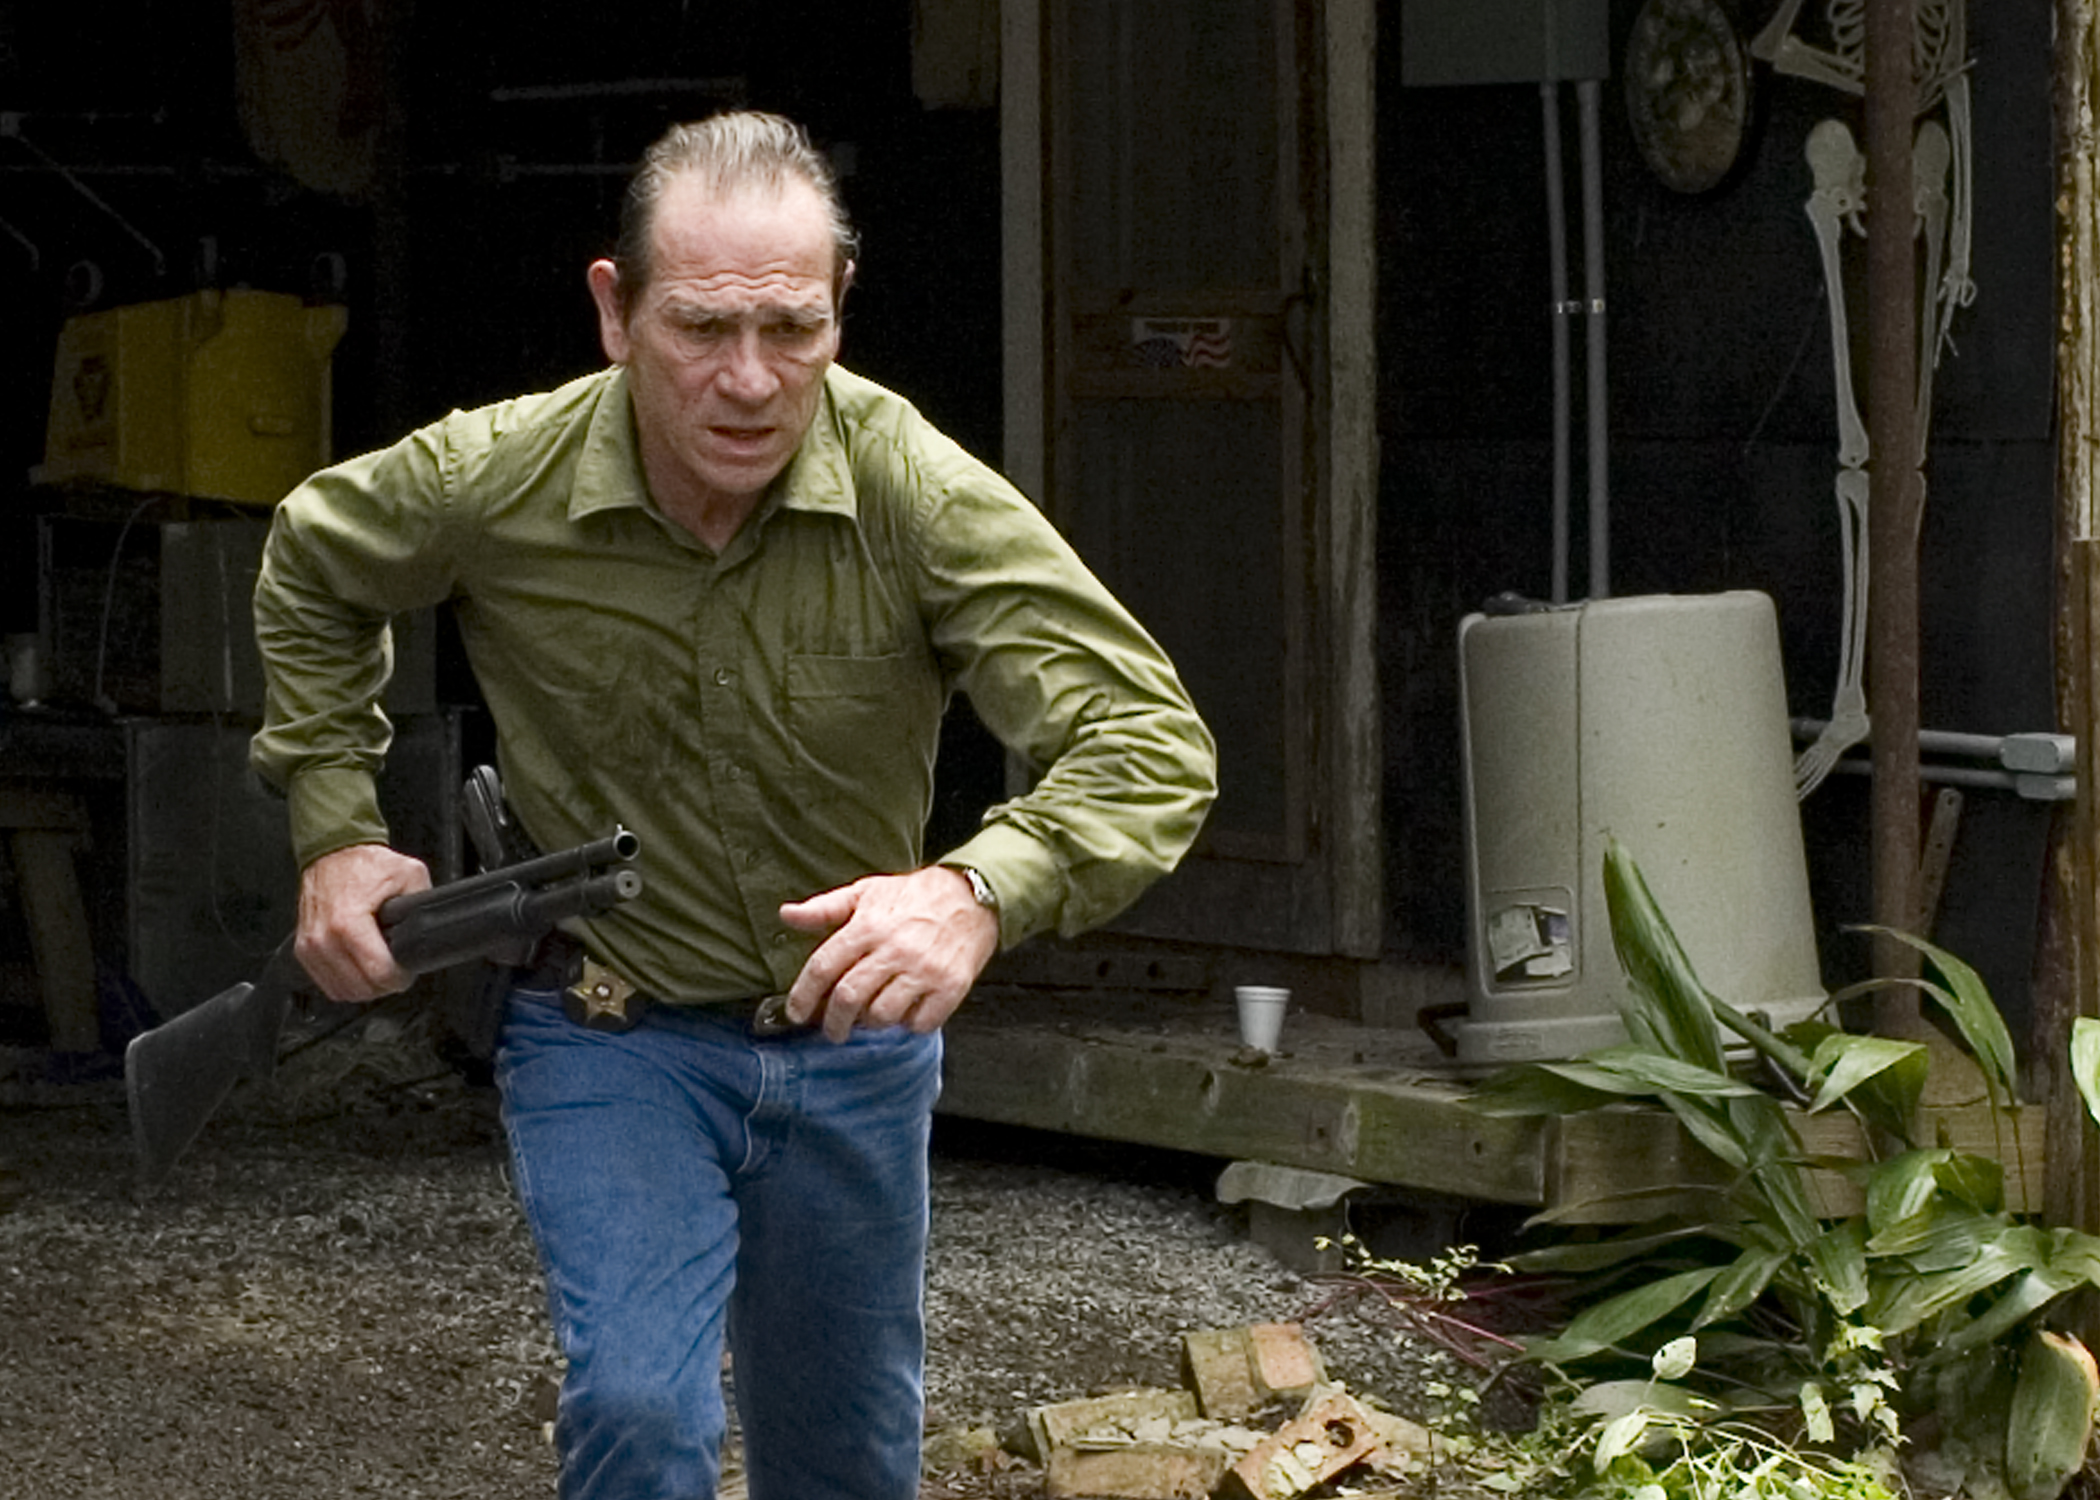 Tommy Lee Jones stars as Dave Robicheaux, a sheriff investigating a young girl's murder